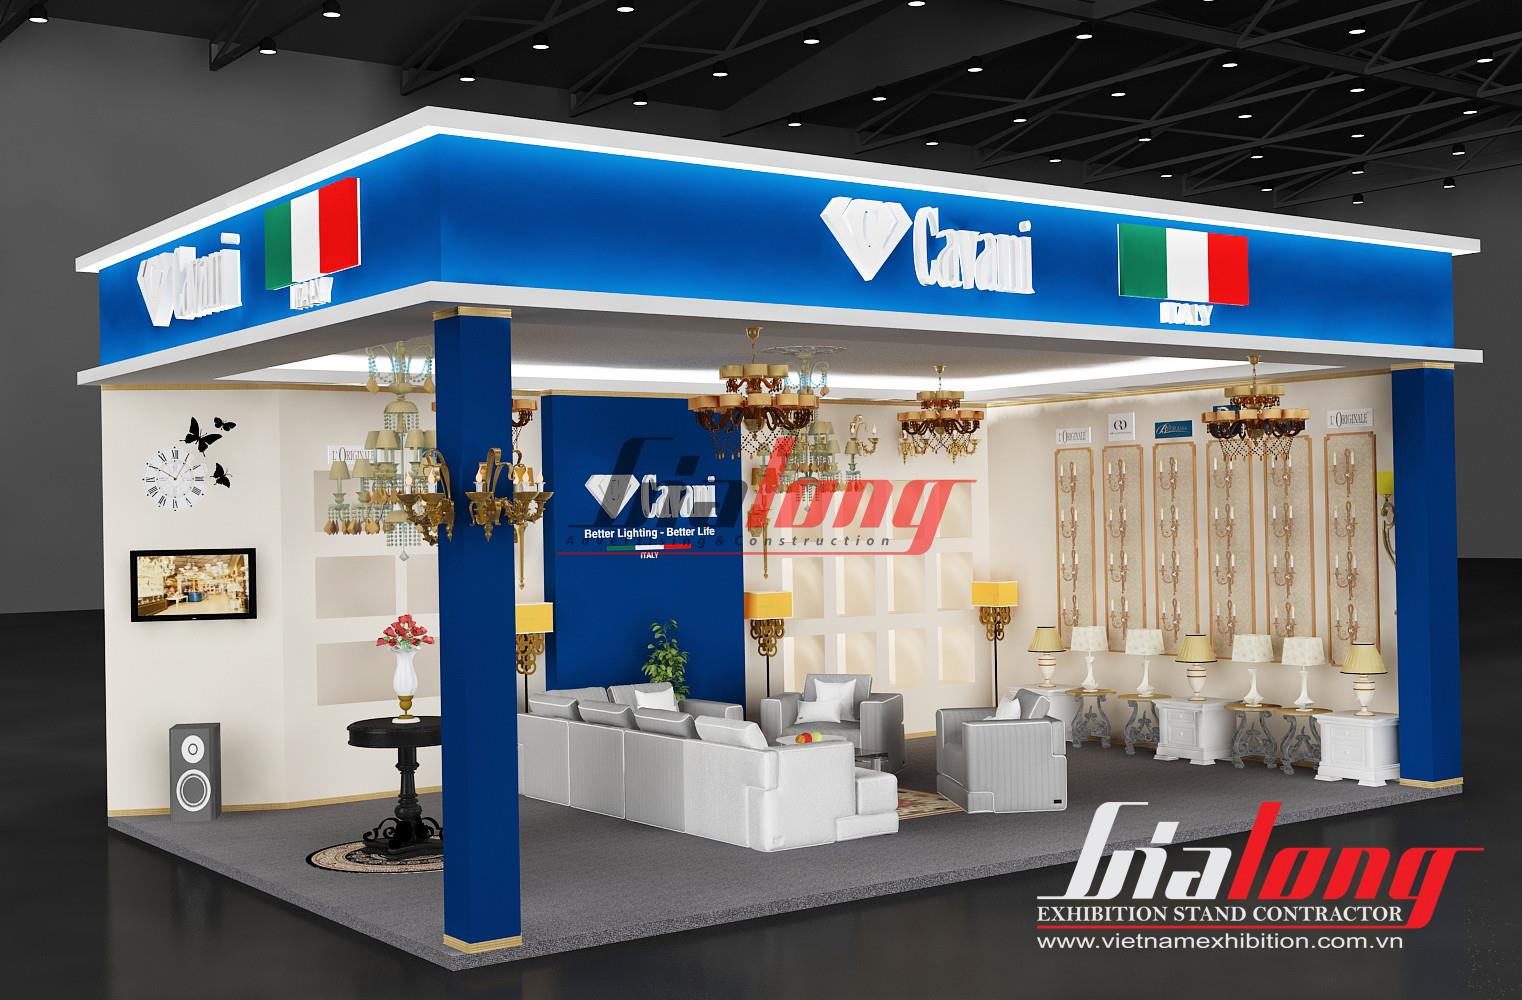 Exhibition Booth Layout : Here are questions to ask when designing an exhibition booth